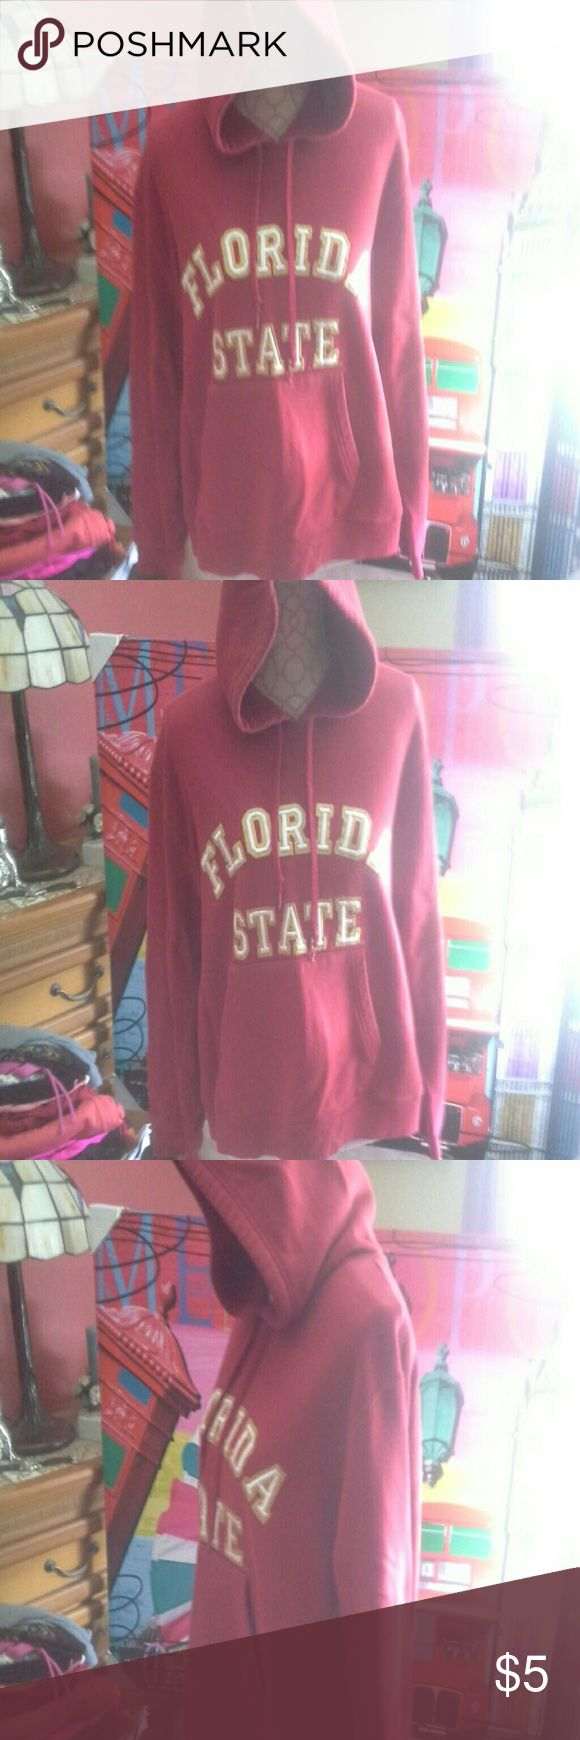 FLORIDA STATE SWEATSHIRT W/ HOOD YOUTH SZ XL J. AMERICA GARNET COLORED FLORIDA STATE HOODED SWEATSHIRT YOUTH SIZE EXTRA LARGE. ( CAN ALSO FIT LADIES SMALL)SUPER SOFT WITH  SOME WEAR BUT REFLECTED IN PRICE. MATERIAL CONTENT IS MACHINE WASHABLE 80 % COTTON AND 20 % POLYESTER. MEASUREMENTS ARE BUST - APPROX 44 INCHES, LENGTH - APPROX 23 INCHES. J. America Shirts & Tops Sweatshirts & Hoodies